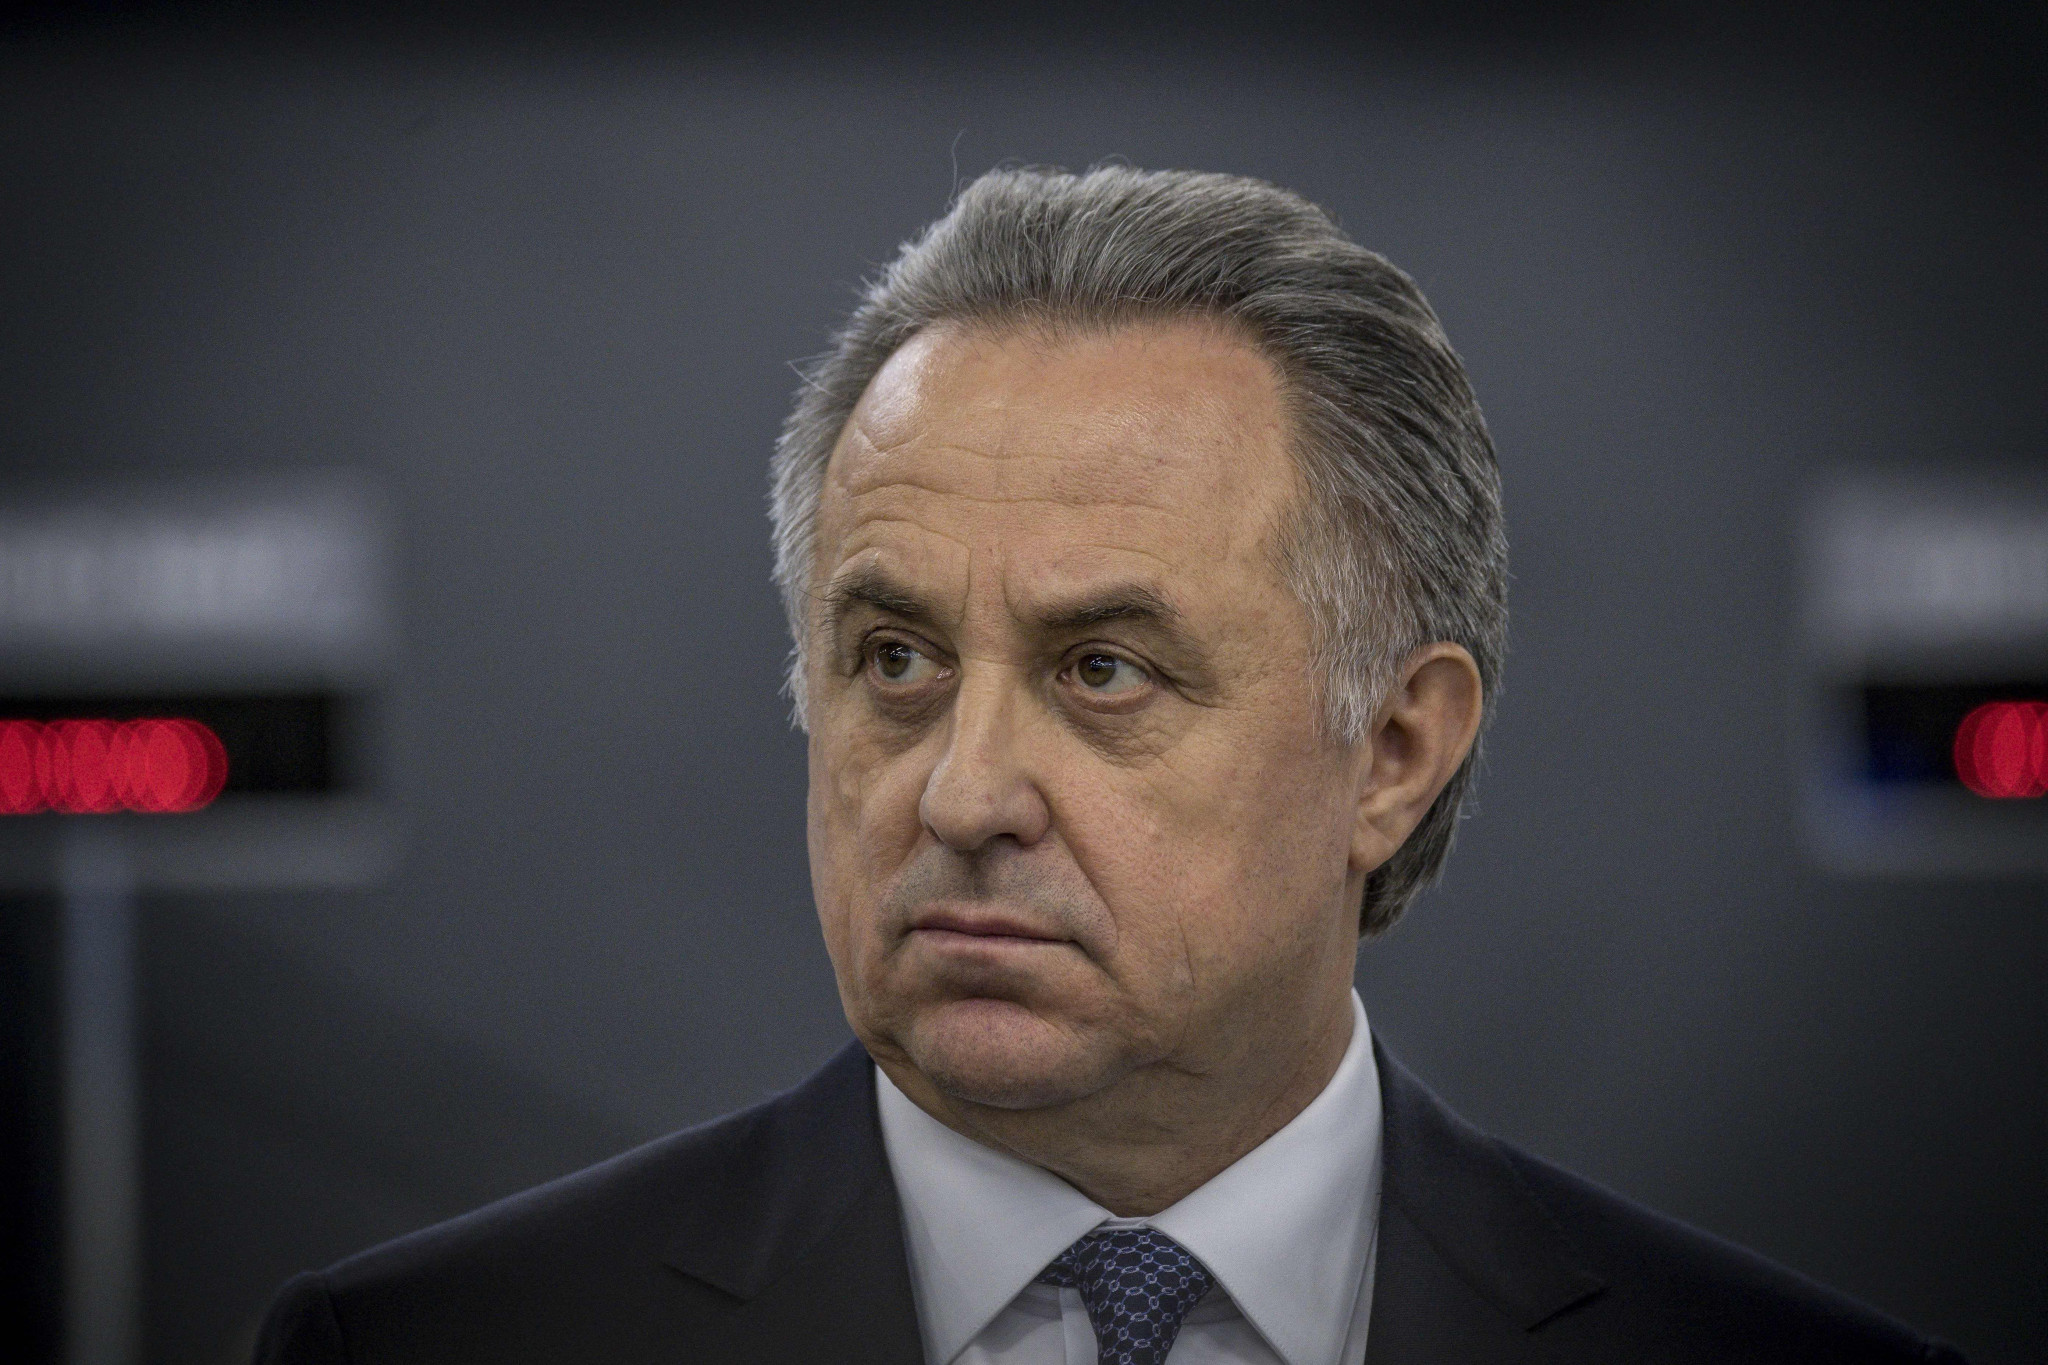 FairSport slams CAS decision to uphold Mutko appeal against lifetime Olympic ban